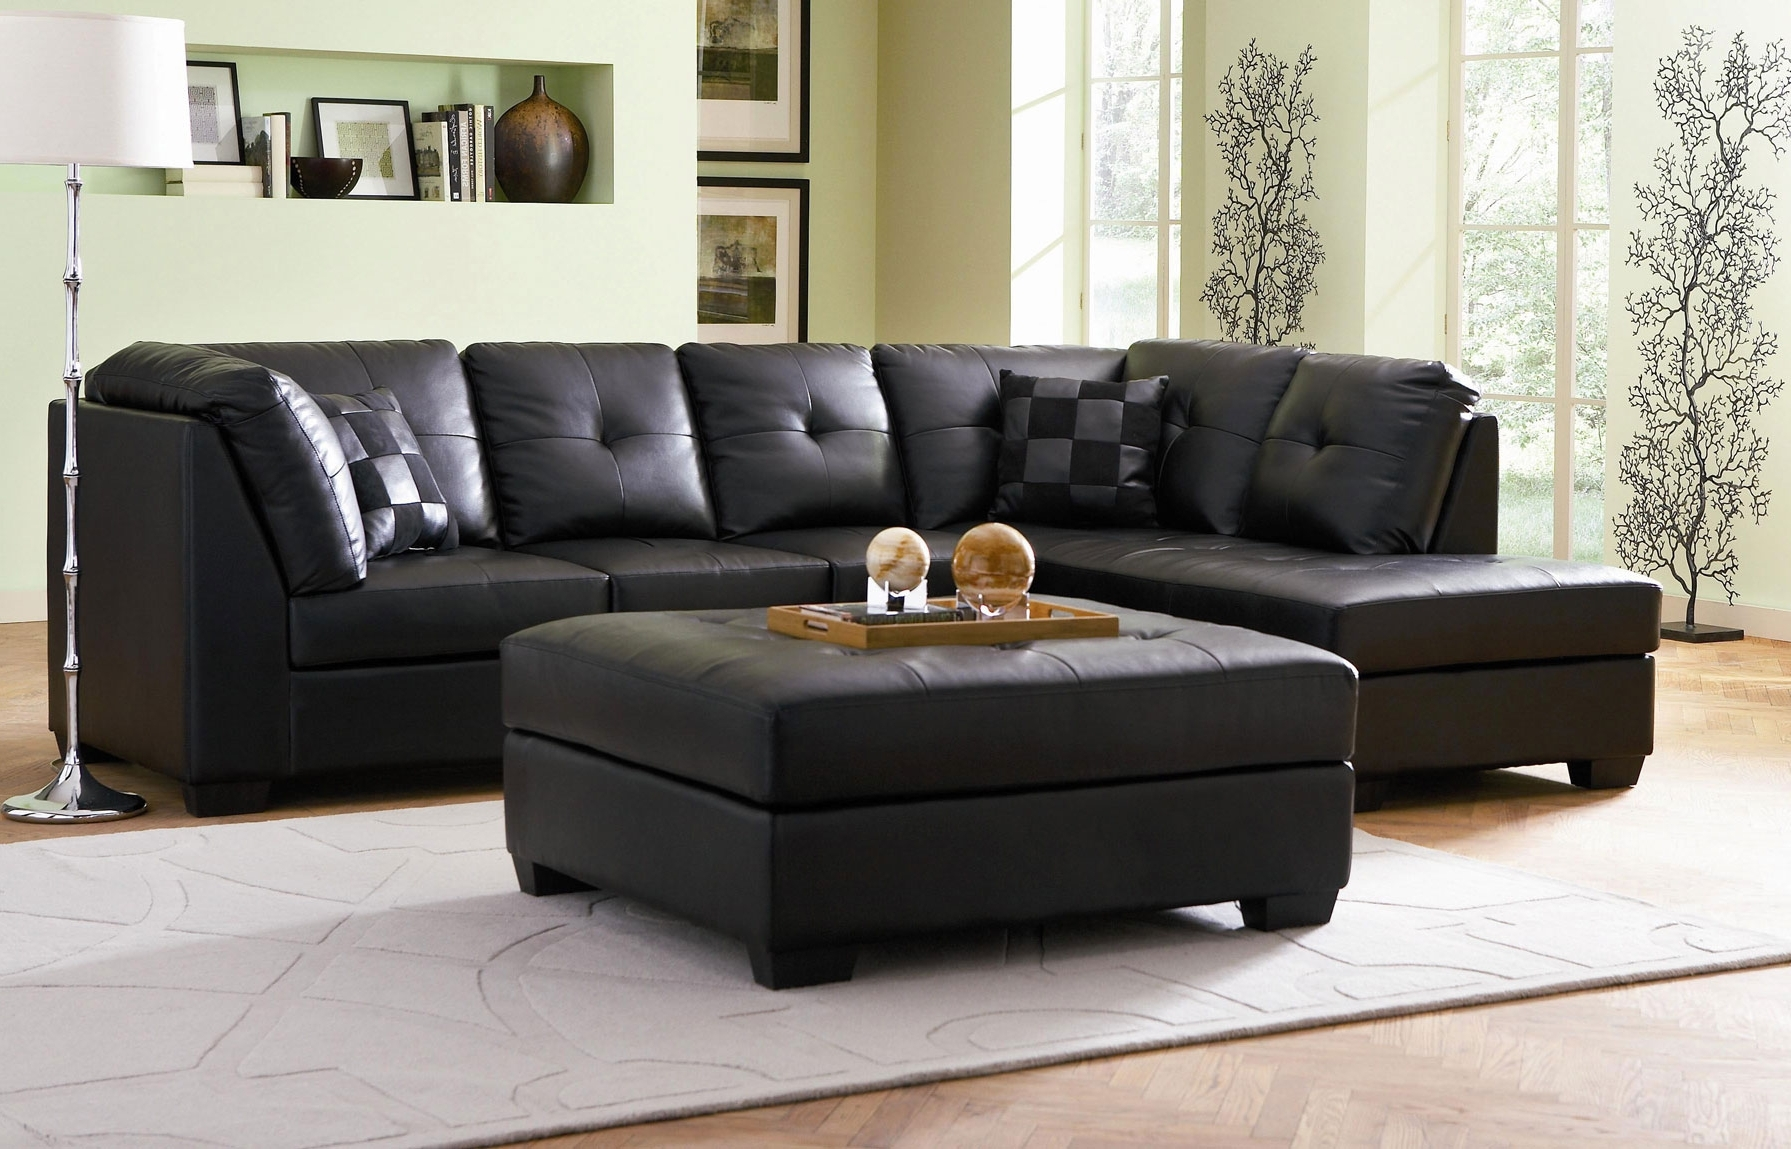 Sectional Sofa: The Best Sectional Sofas Charlotte Nc Sofa Mart Pertaining To Preferred Sectional Sofas In Charlotte Nc (View 18 of 20)